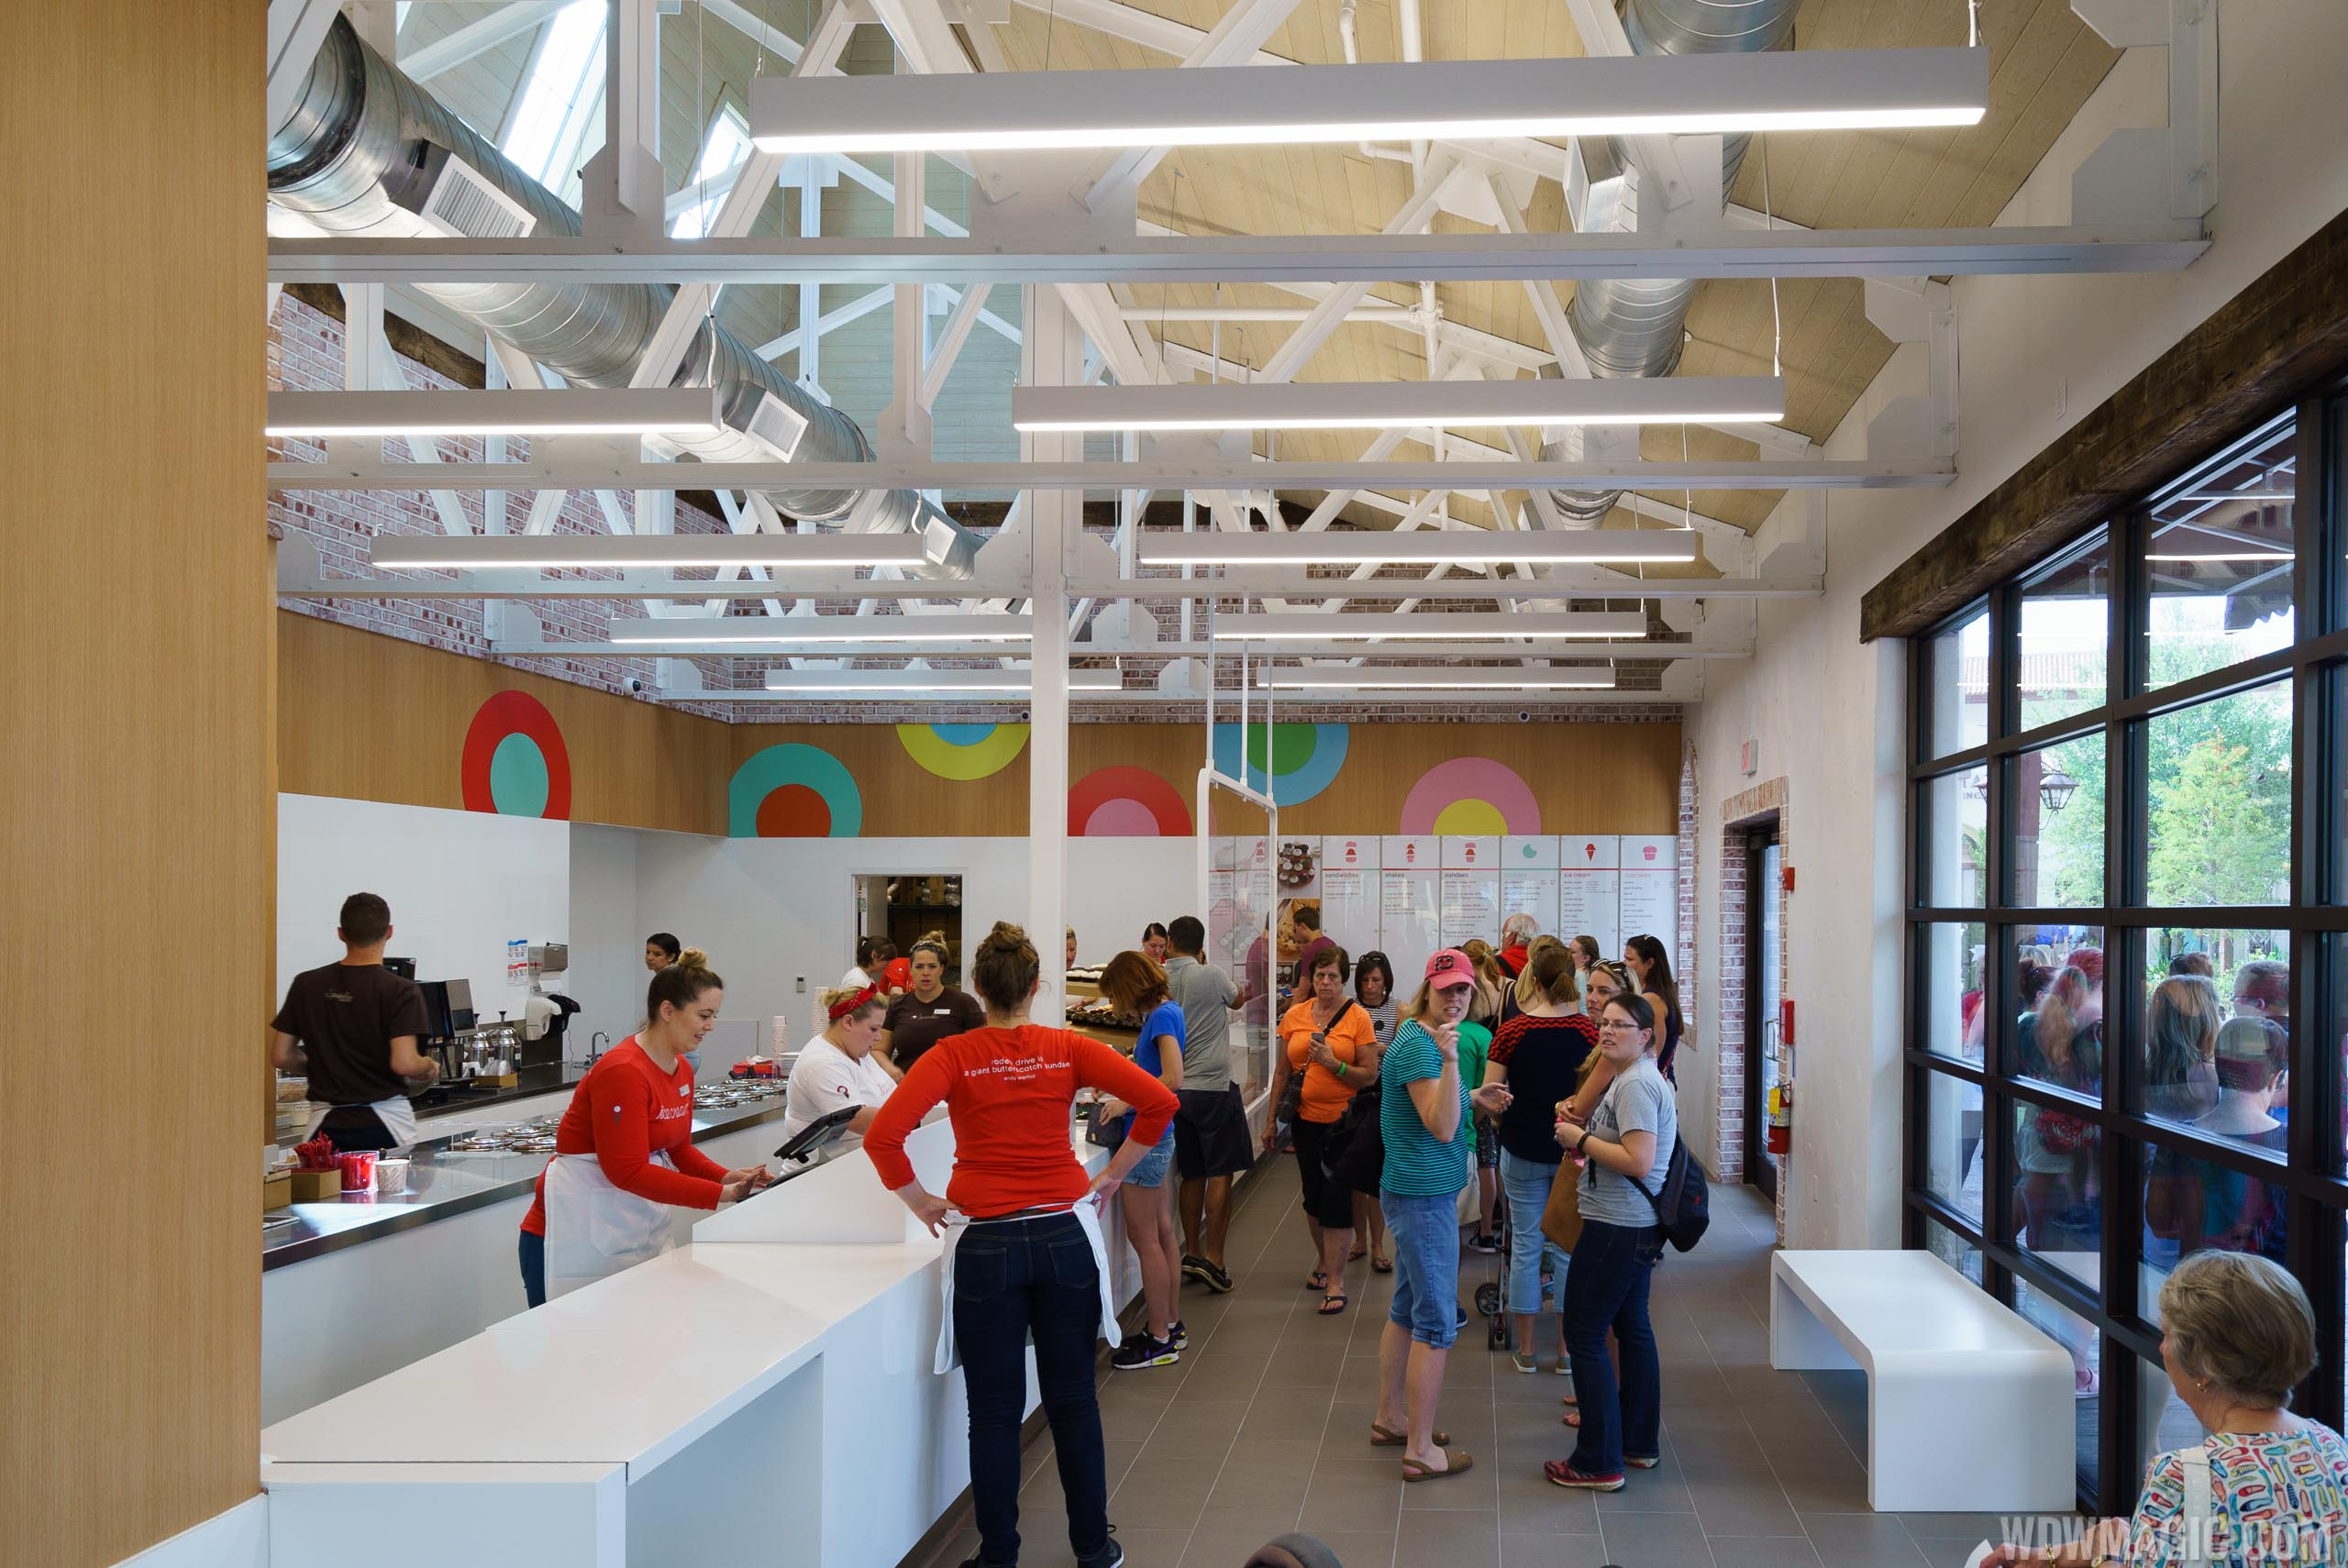 Overview of the interior space at Sprinkles Disney Springs